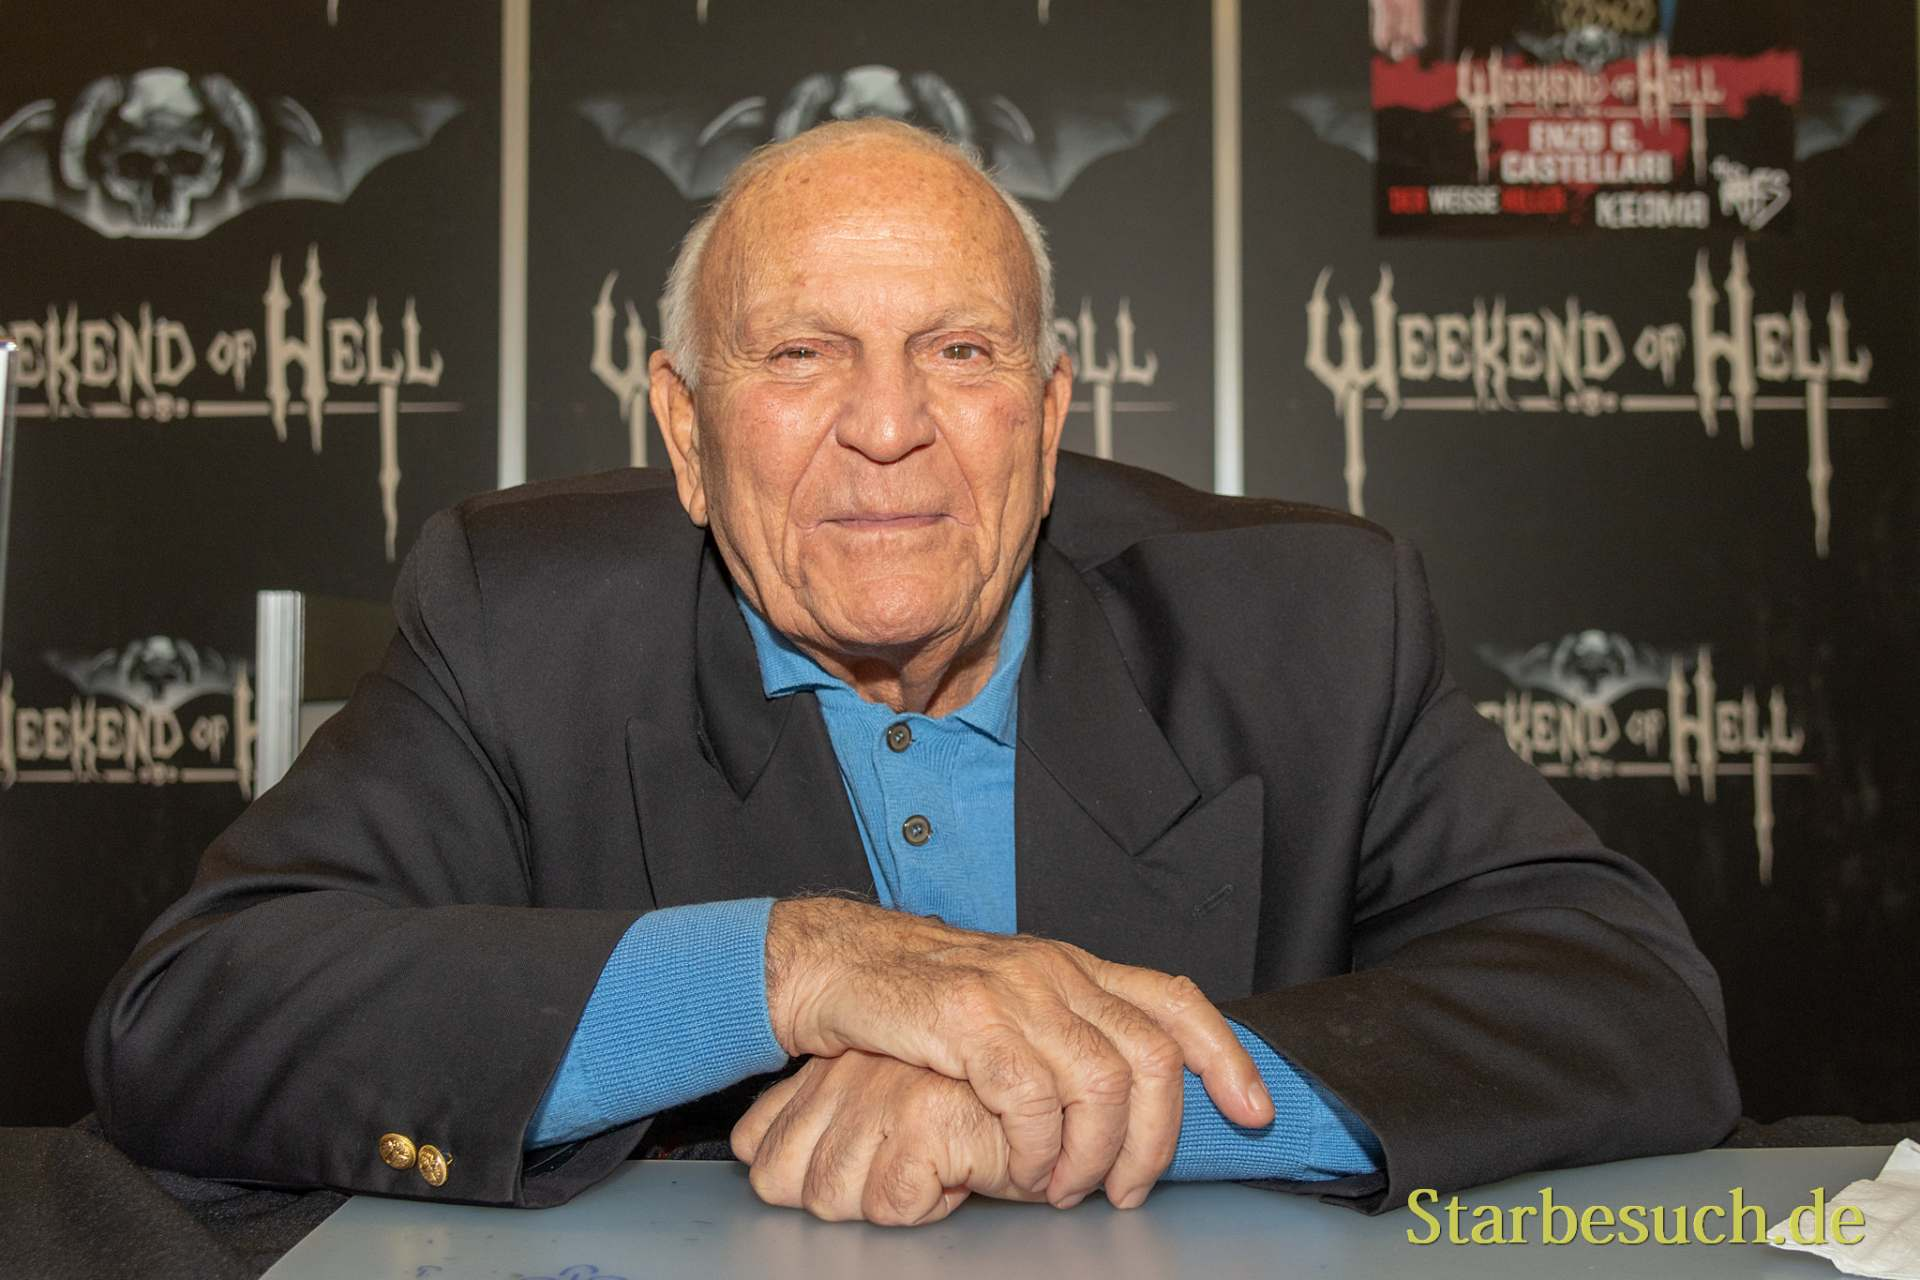 DORTMUND, GERMANY - November 3rd 2018: Enzo G. Castellari at Weekend of Hell 2018